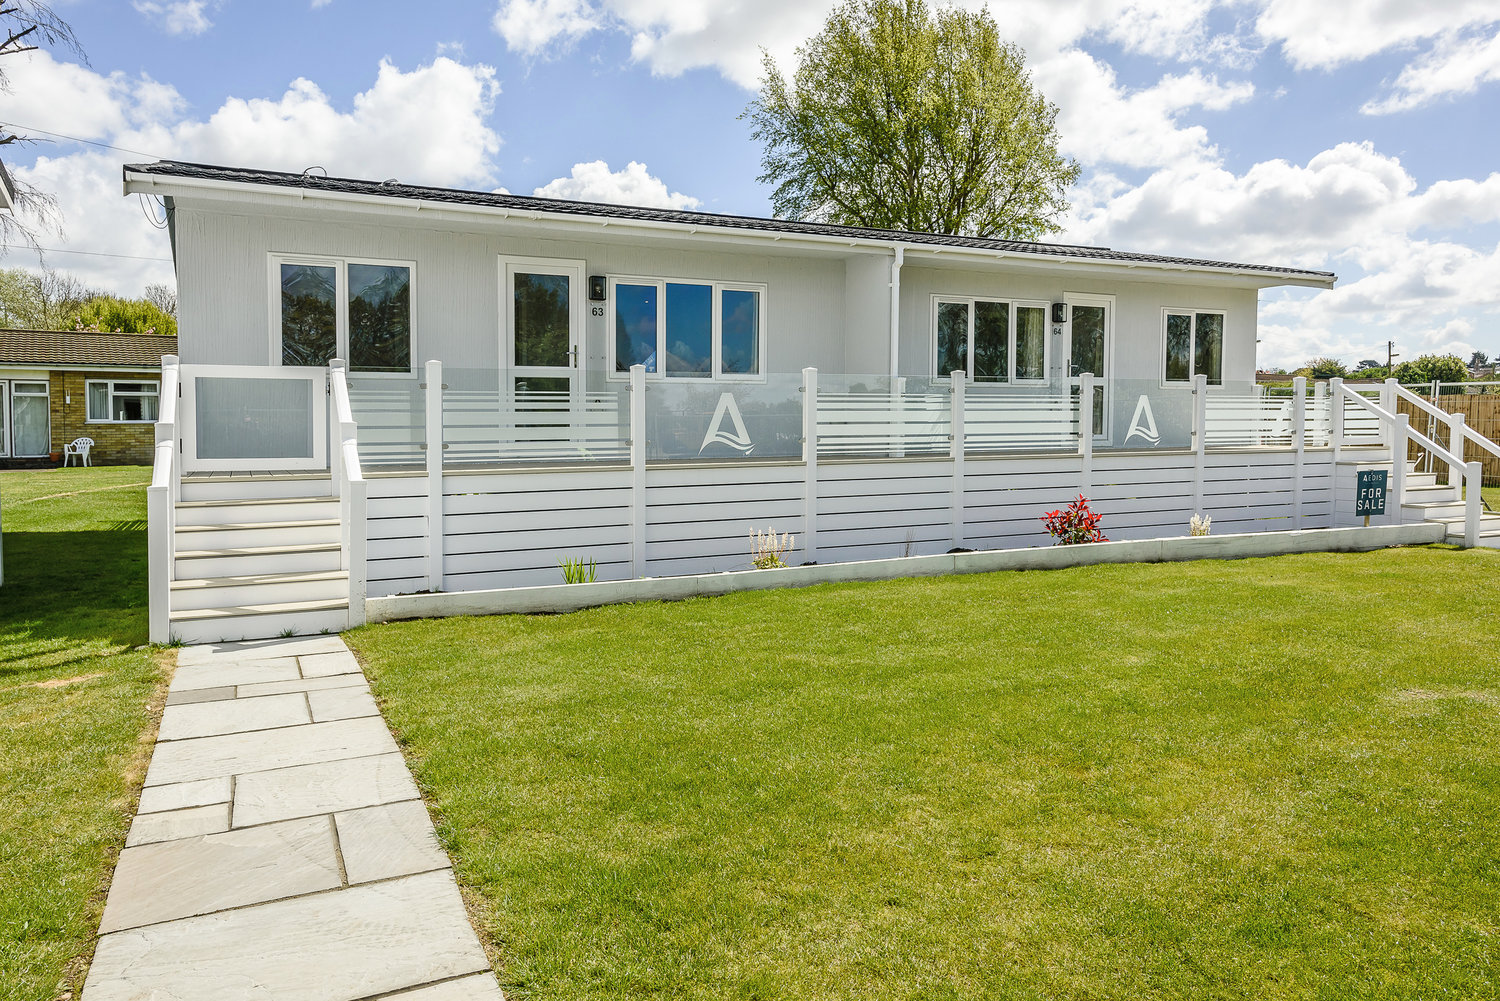 Image: A new holiday property with 2 bedrooms, luxury decking and unrivalled views of the Broads National Park